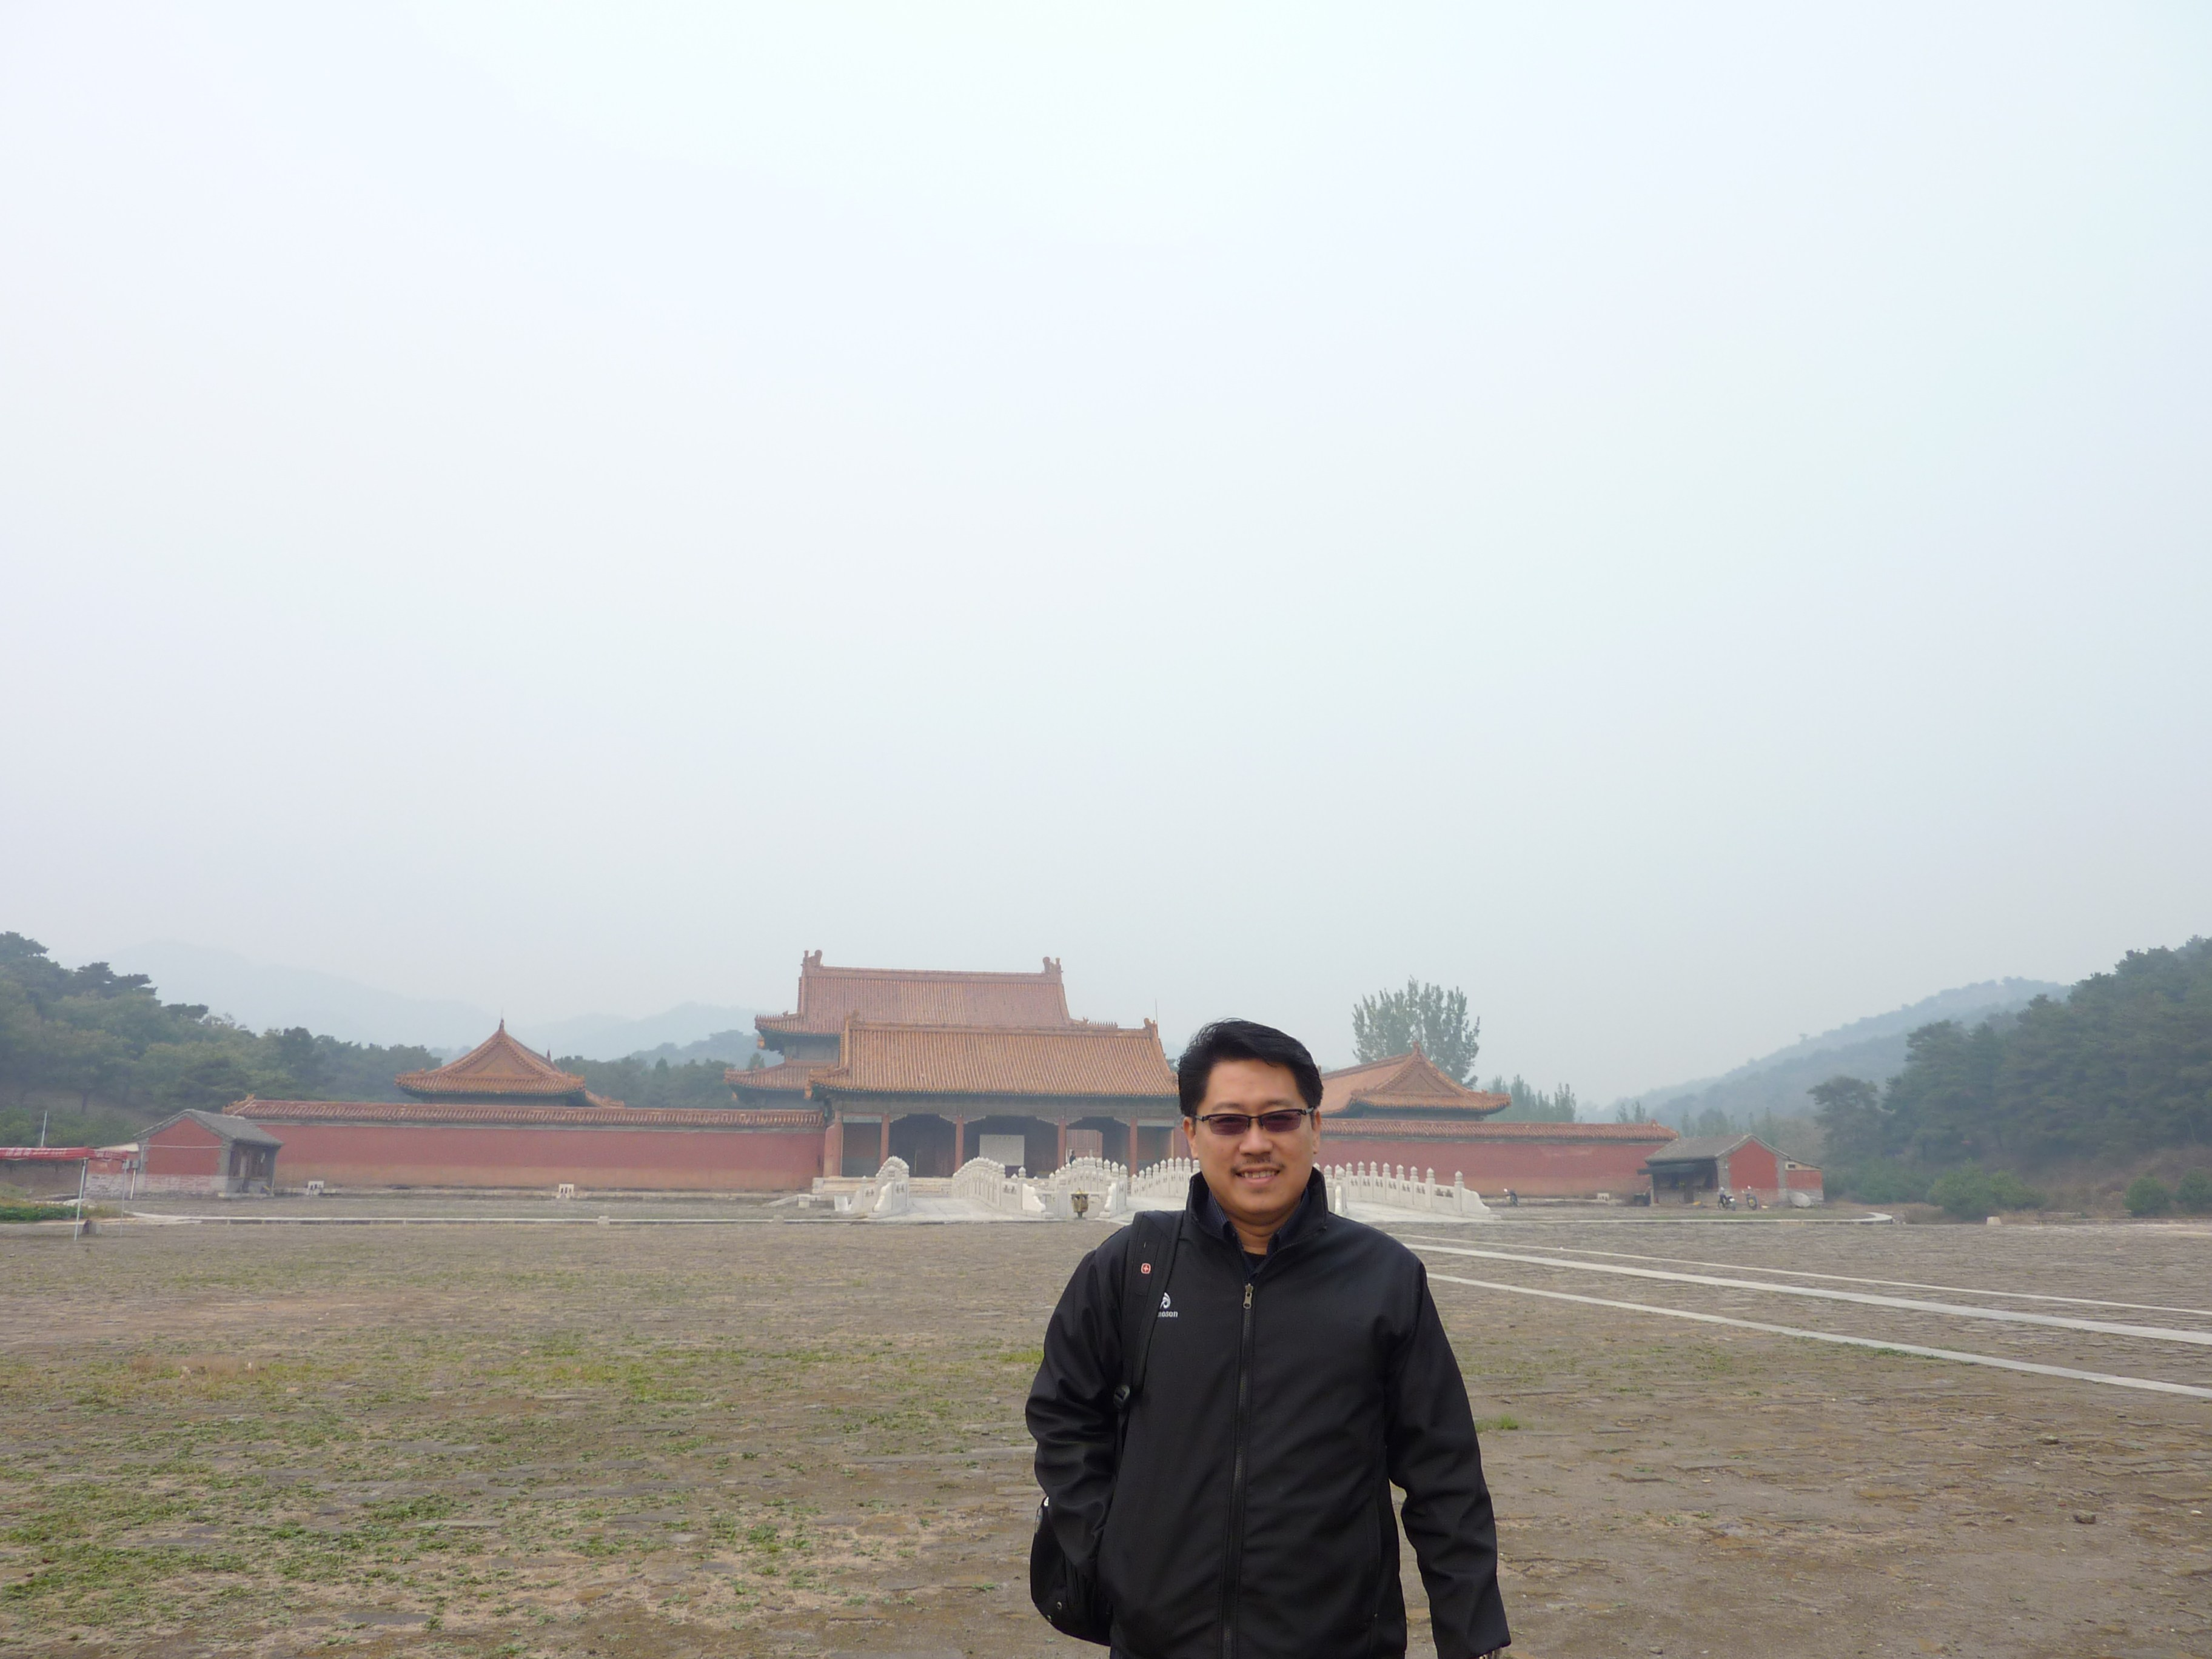 Master Soon in Hebei, China Oct 2011. This 2 weeks Trip was meant for understanding the Might of China as a World Power.